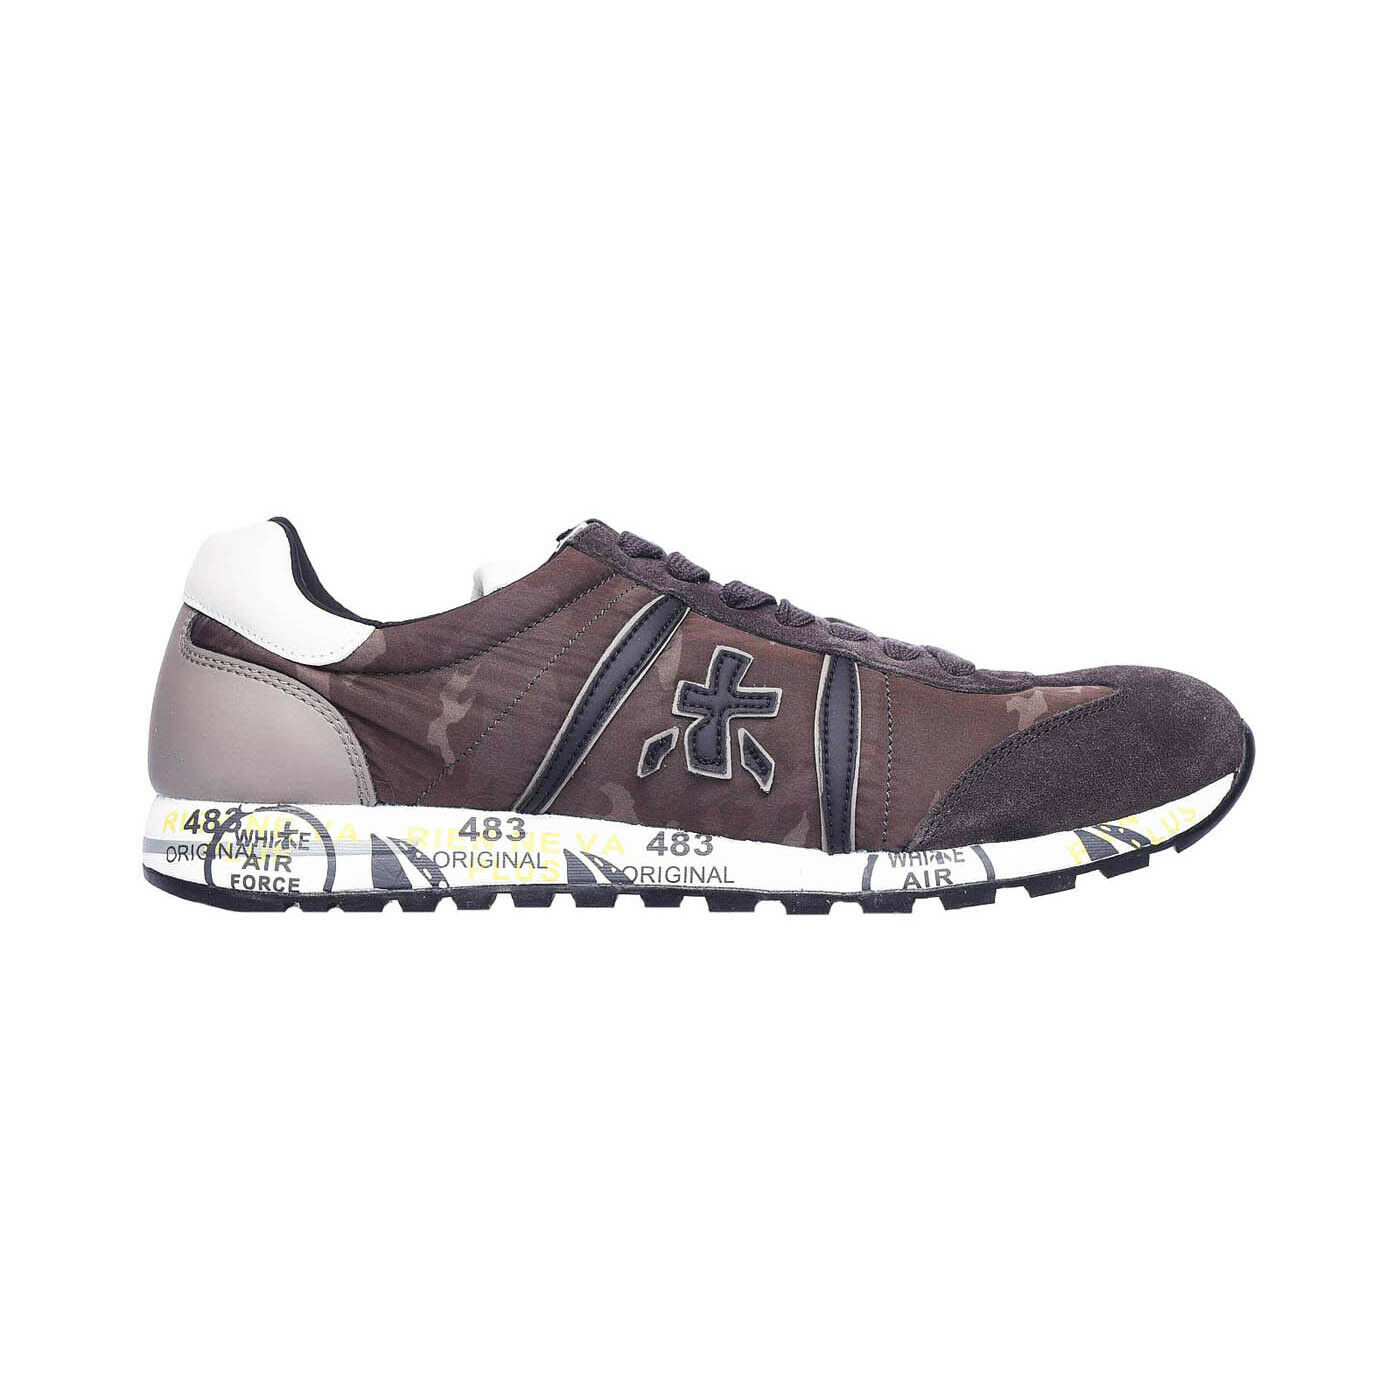 Premiata Lucy 2459 Leather - Fabric Italian Sneakers Brown Camo